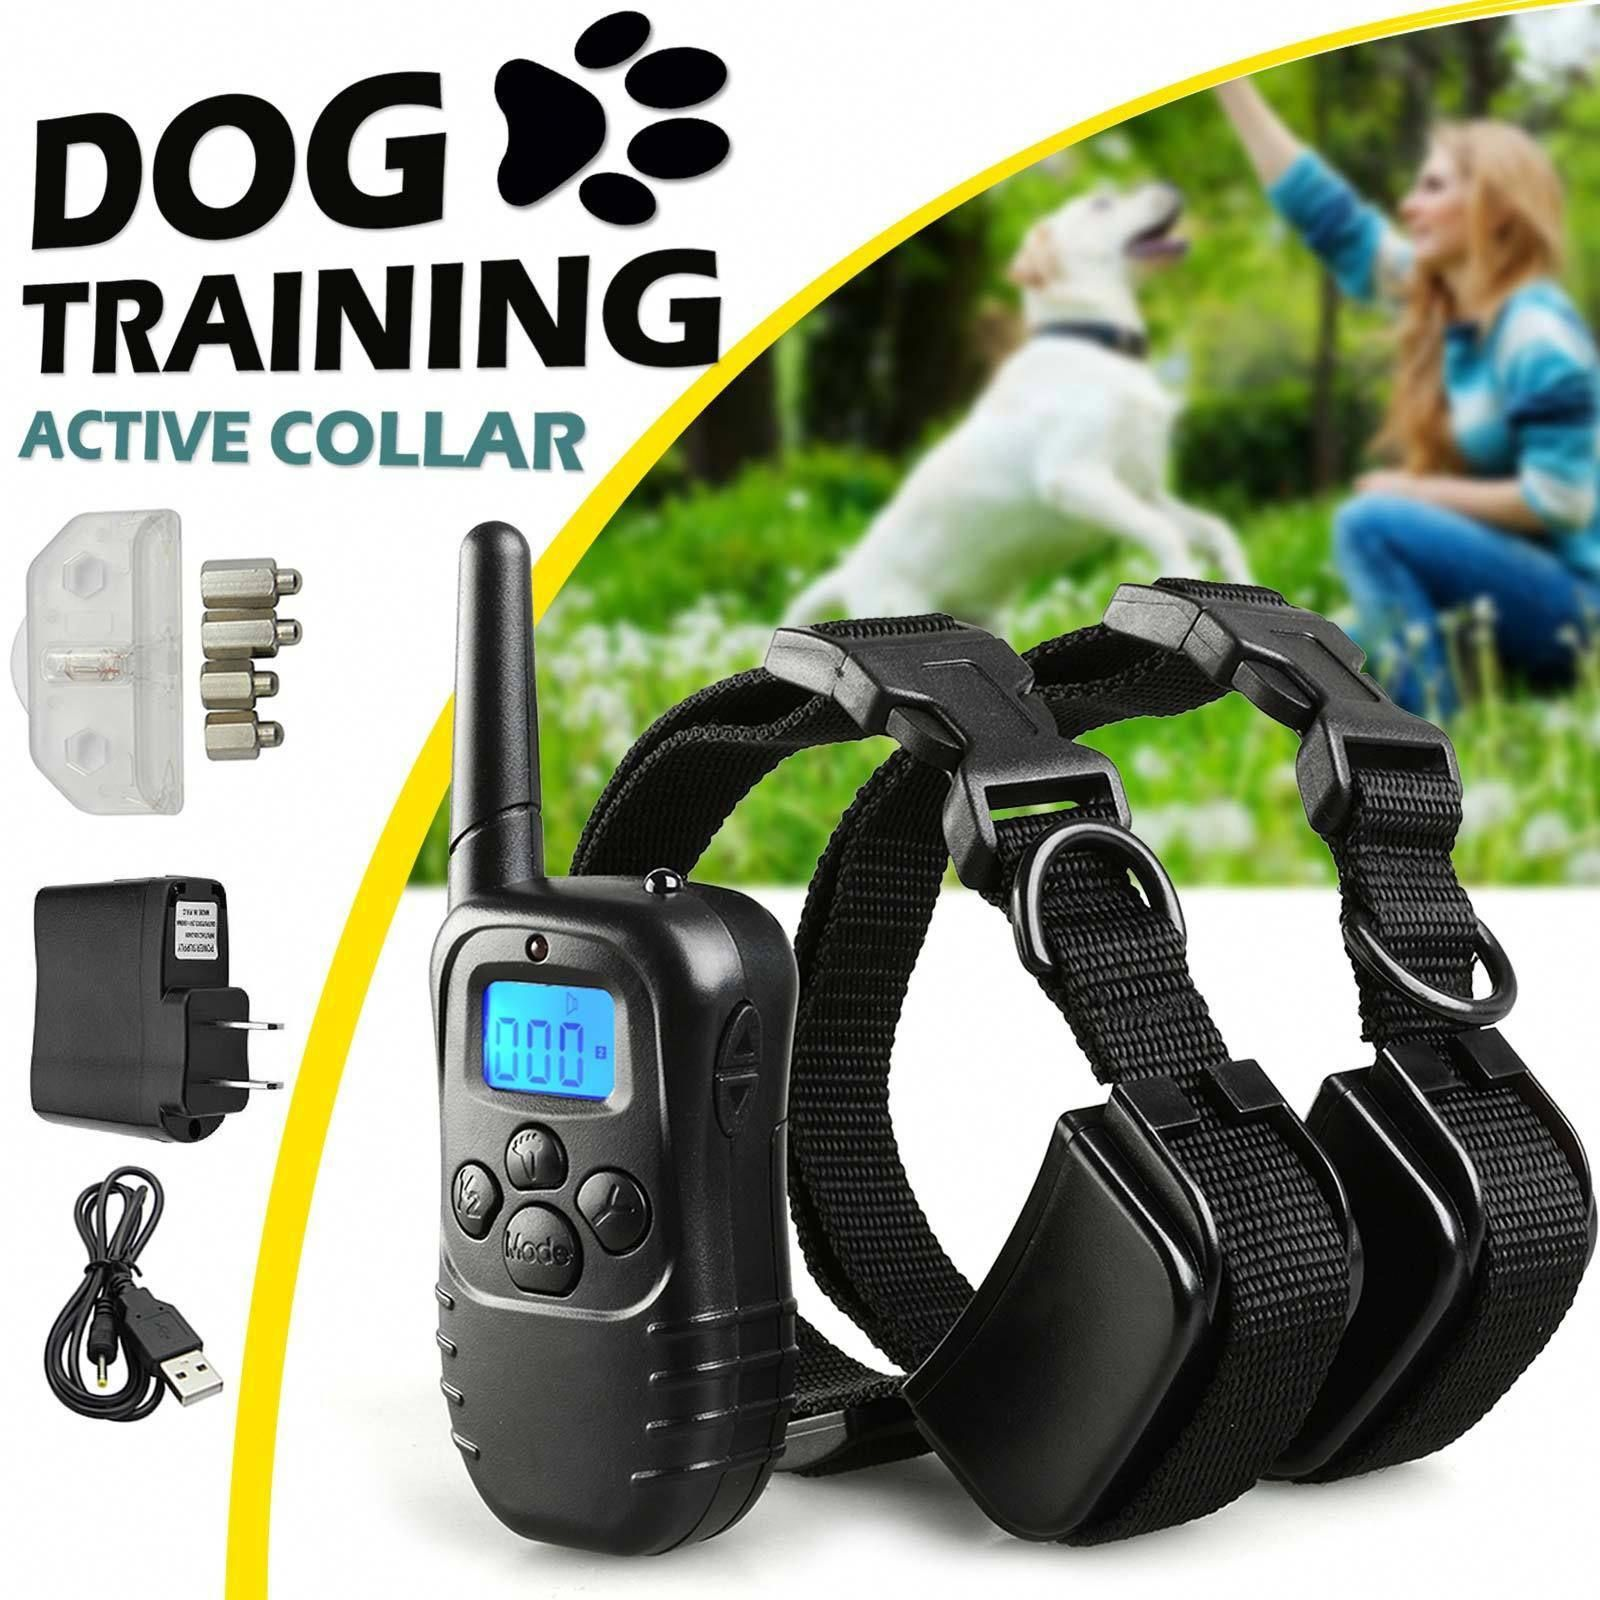 Clearheaded Coached Best Dog Training Tricks Click For More